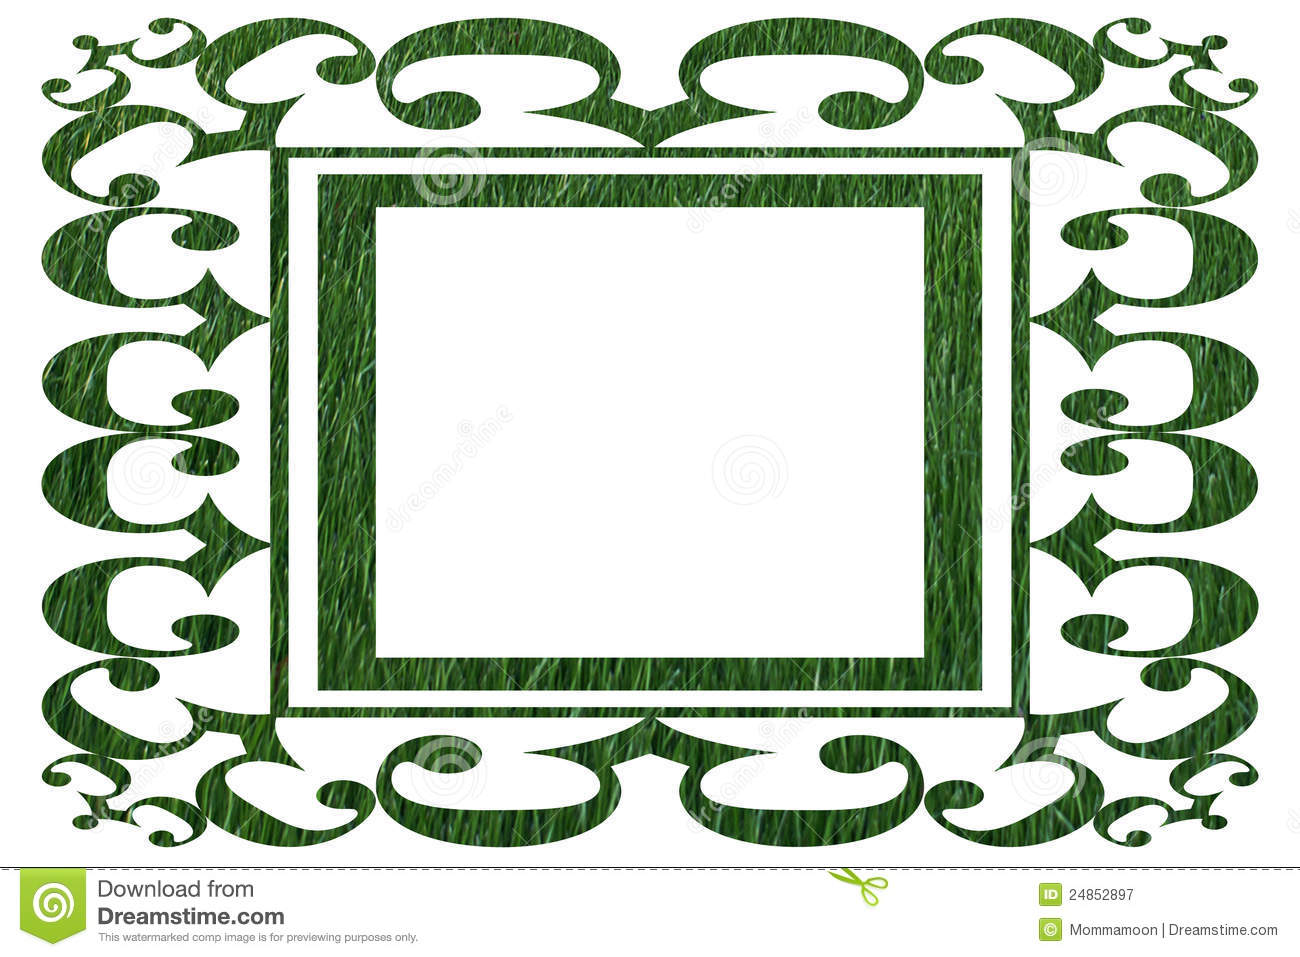 Ornamental border in grass pattern royalty free stock for Ornamental grass border design